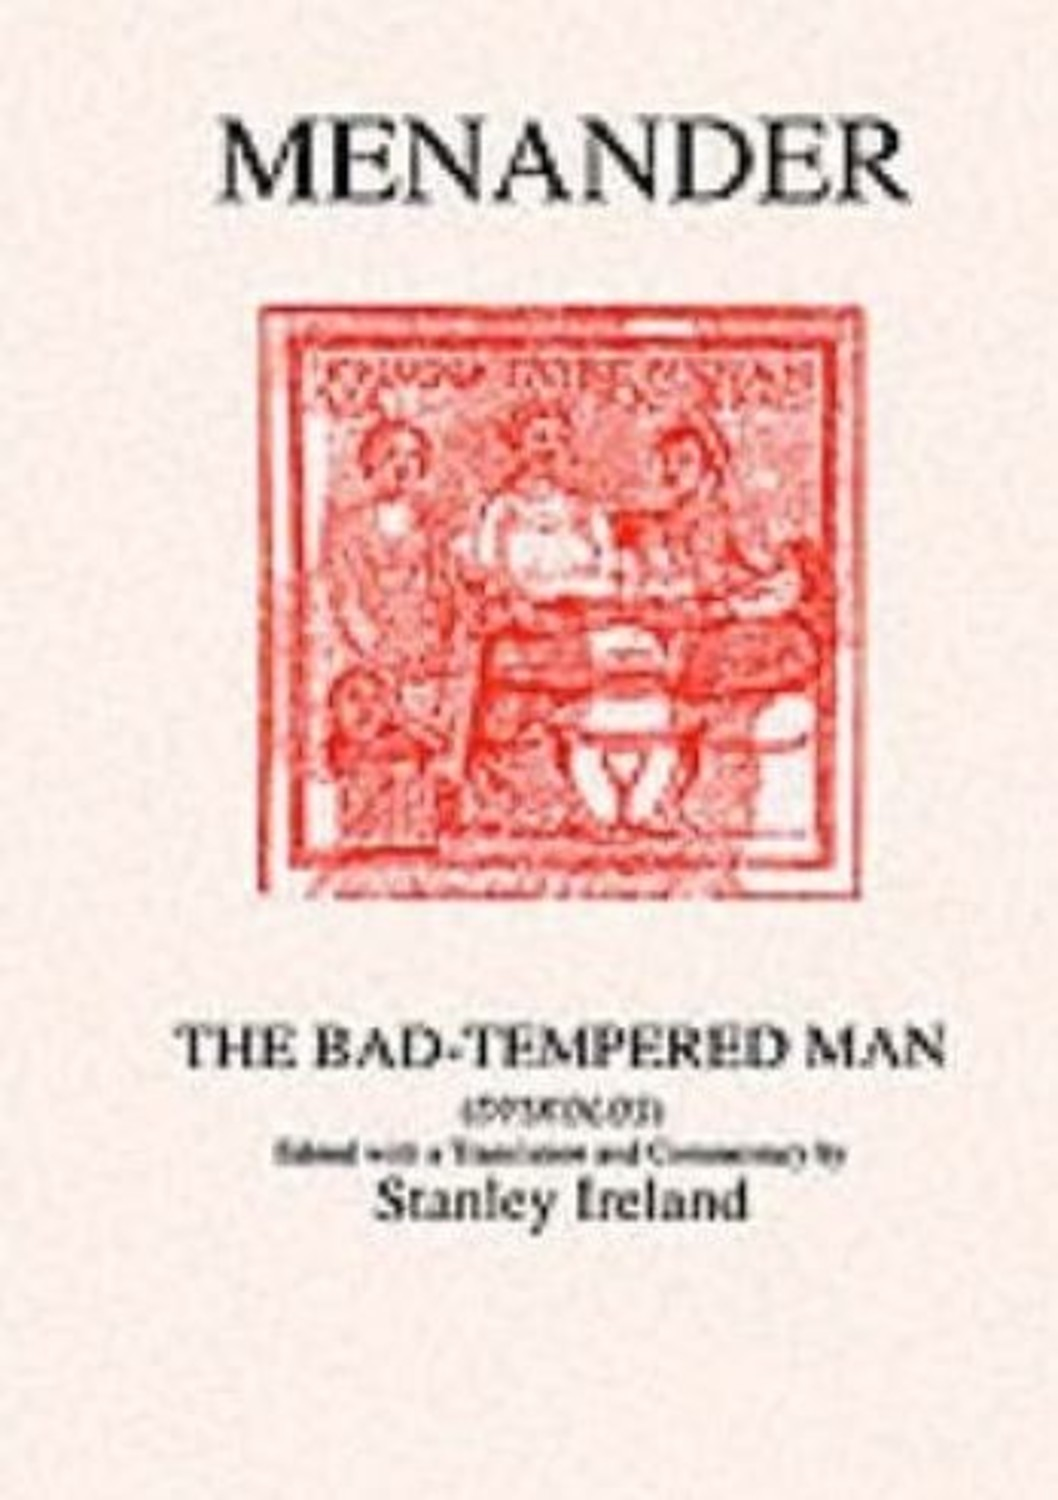 Menander: The Bad Tempered Man